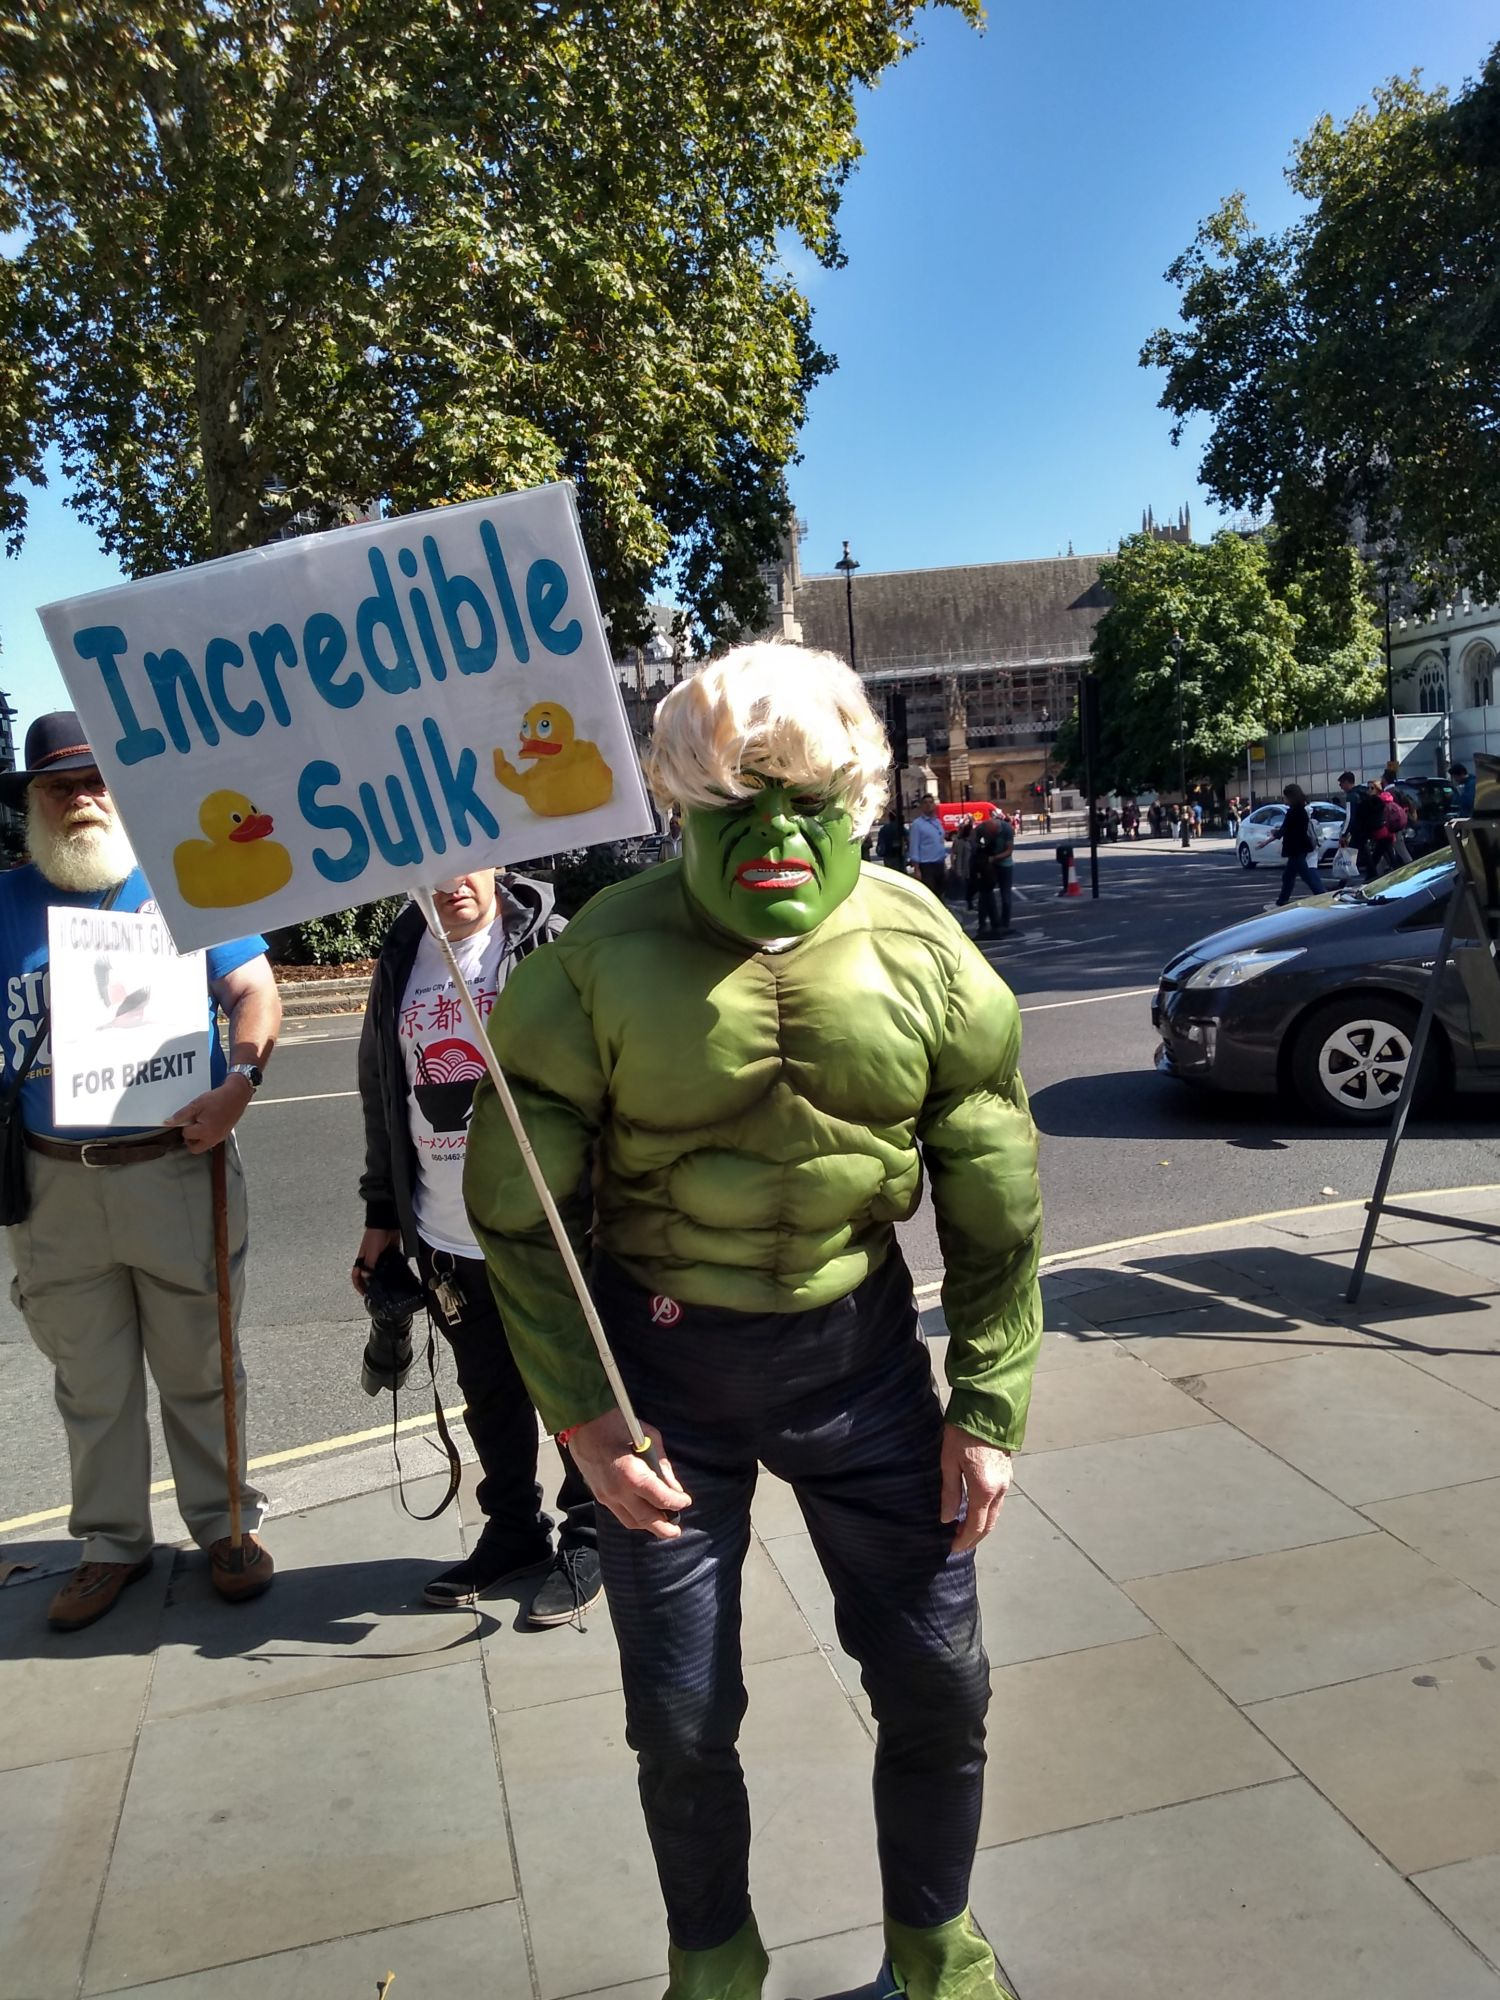 The Incredible Hulk Comes to the British Supreme Court